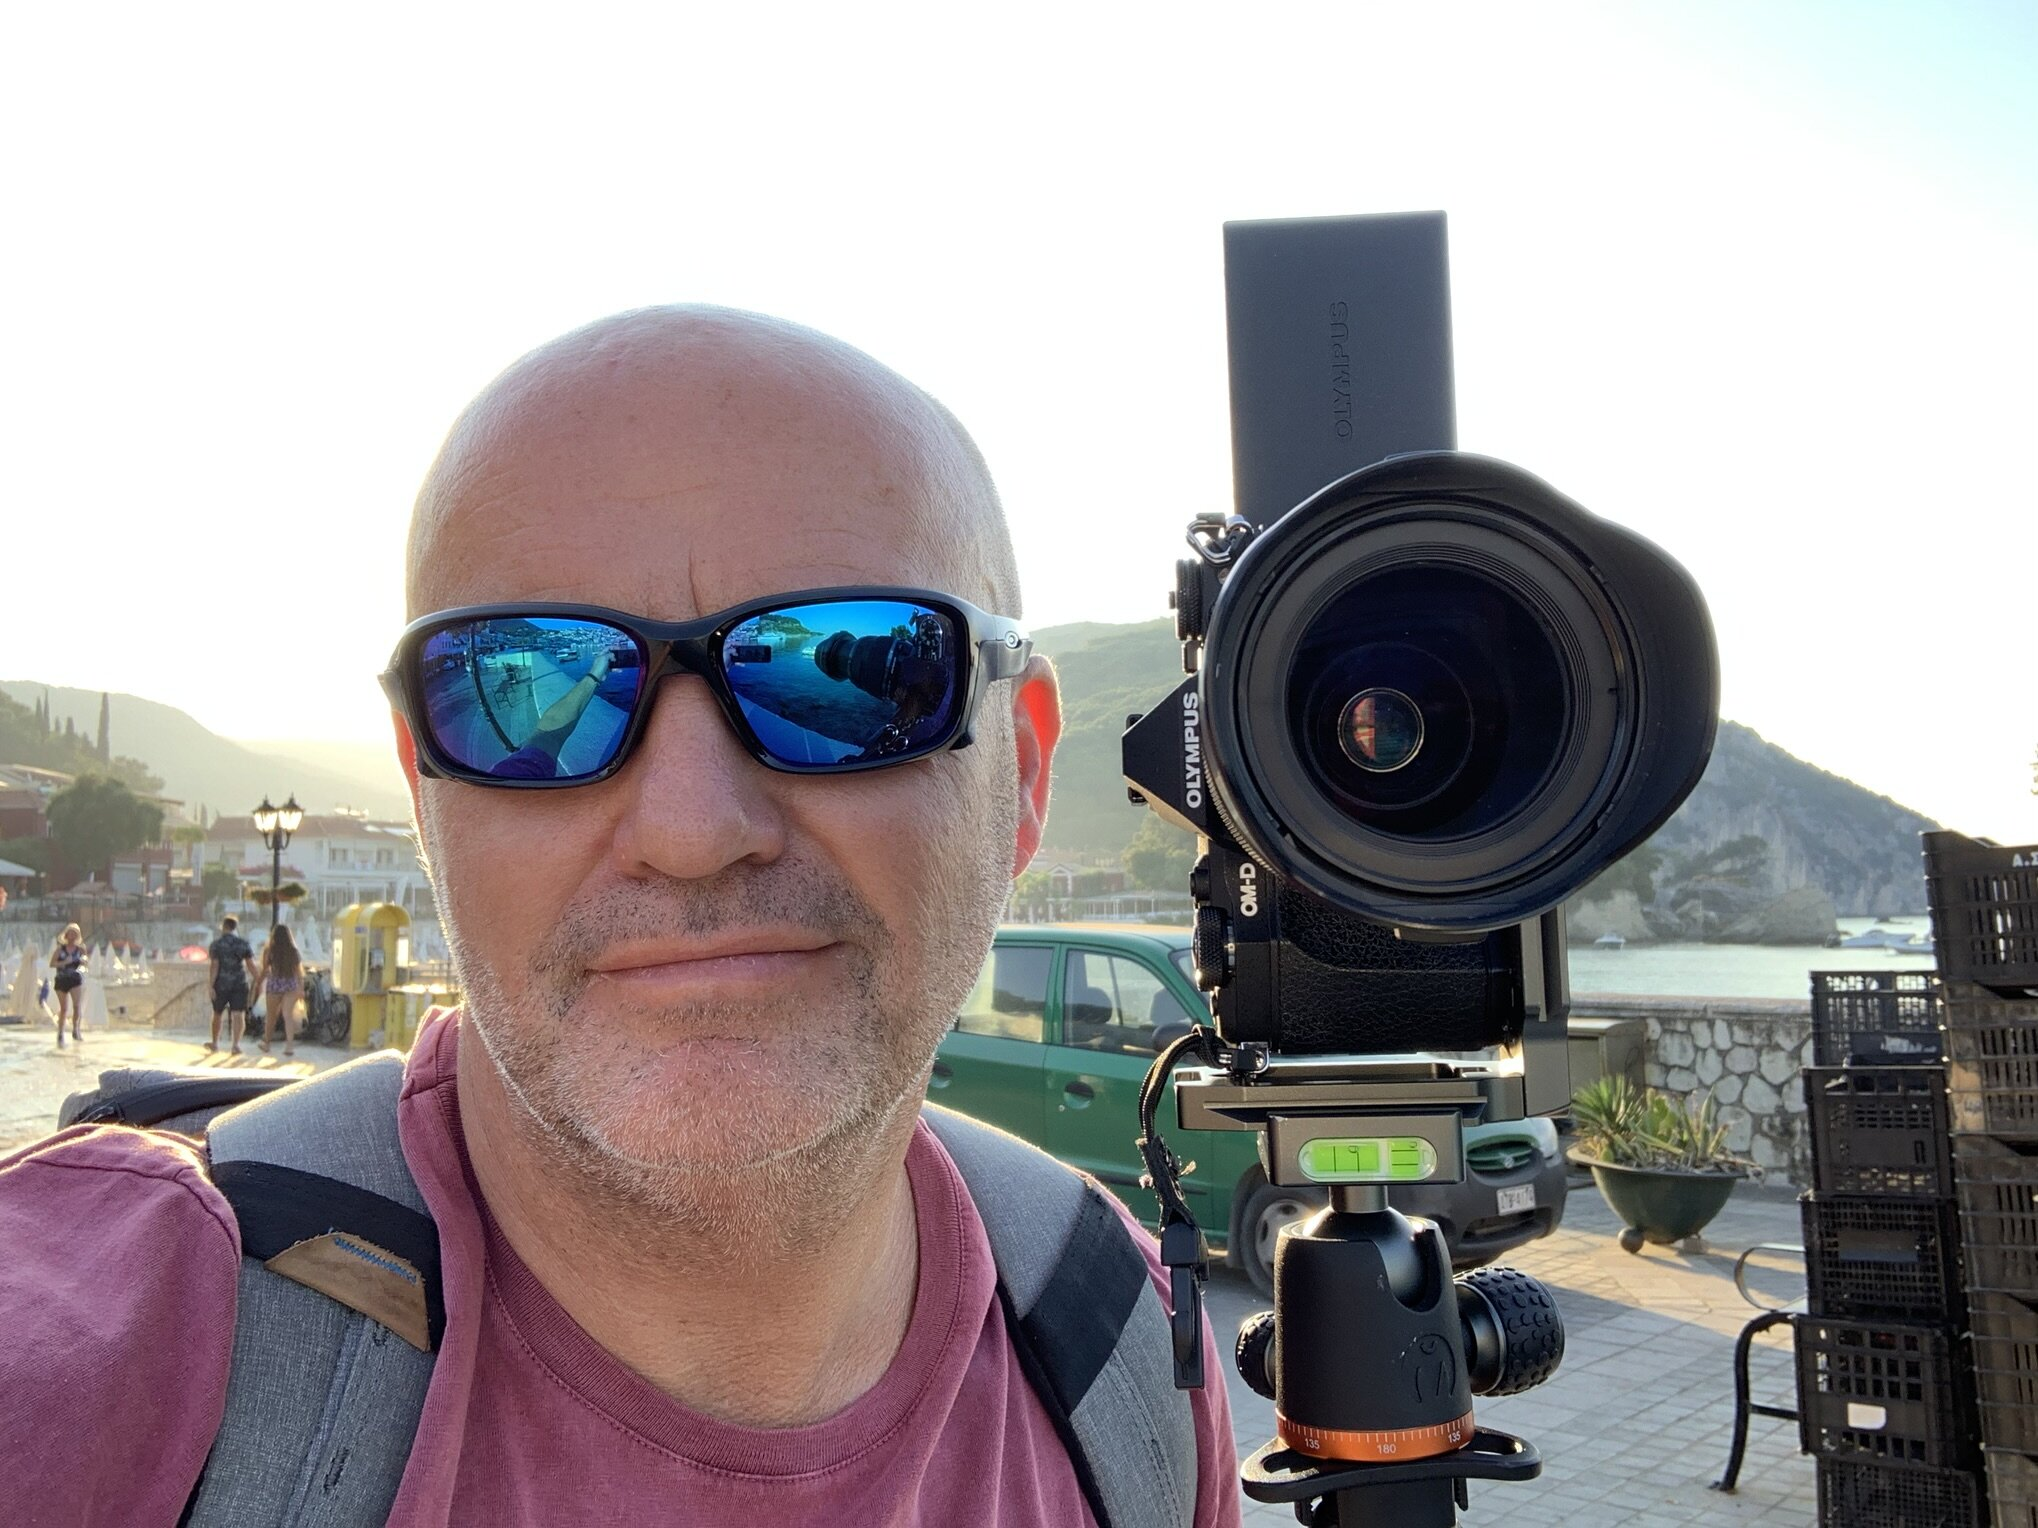 Me on location in Parga with my Olympus OM-D EM5 Mk 2